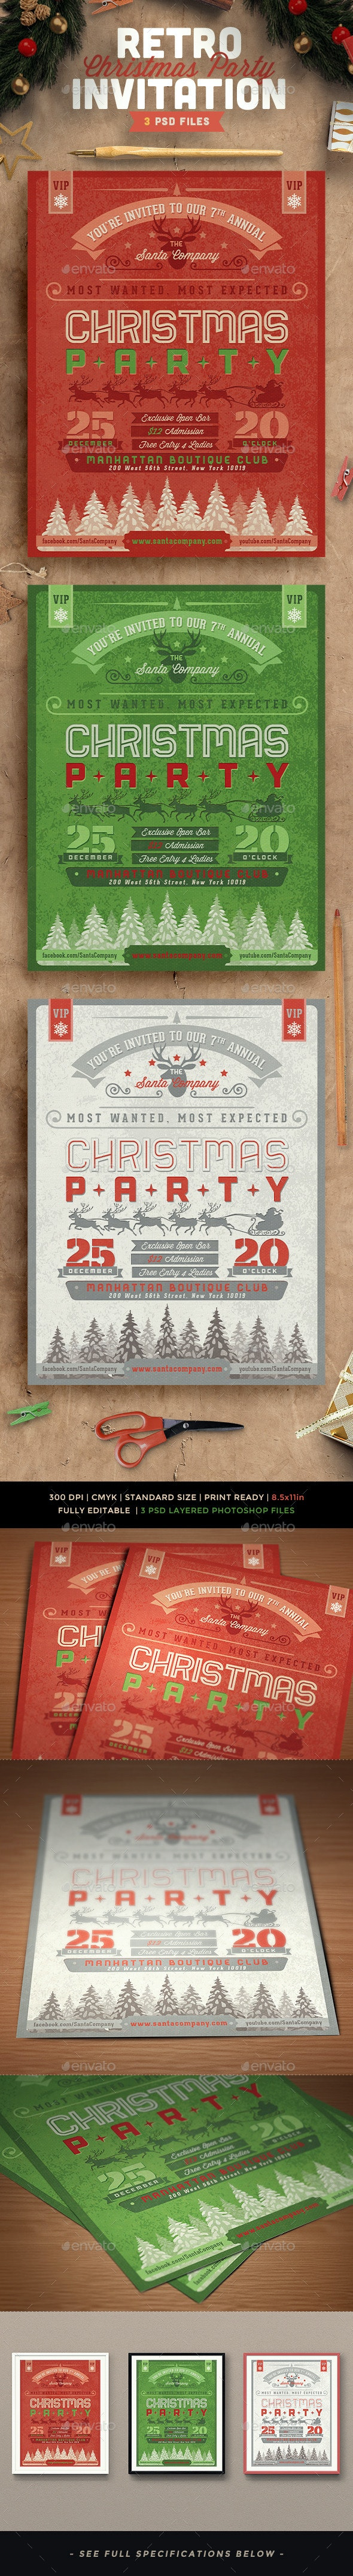 Retro Christmas Party Invitation - Invitations Cards & Invites